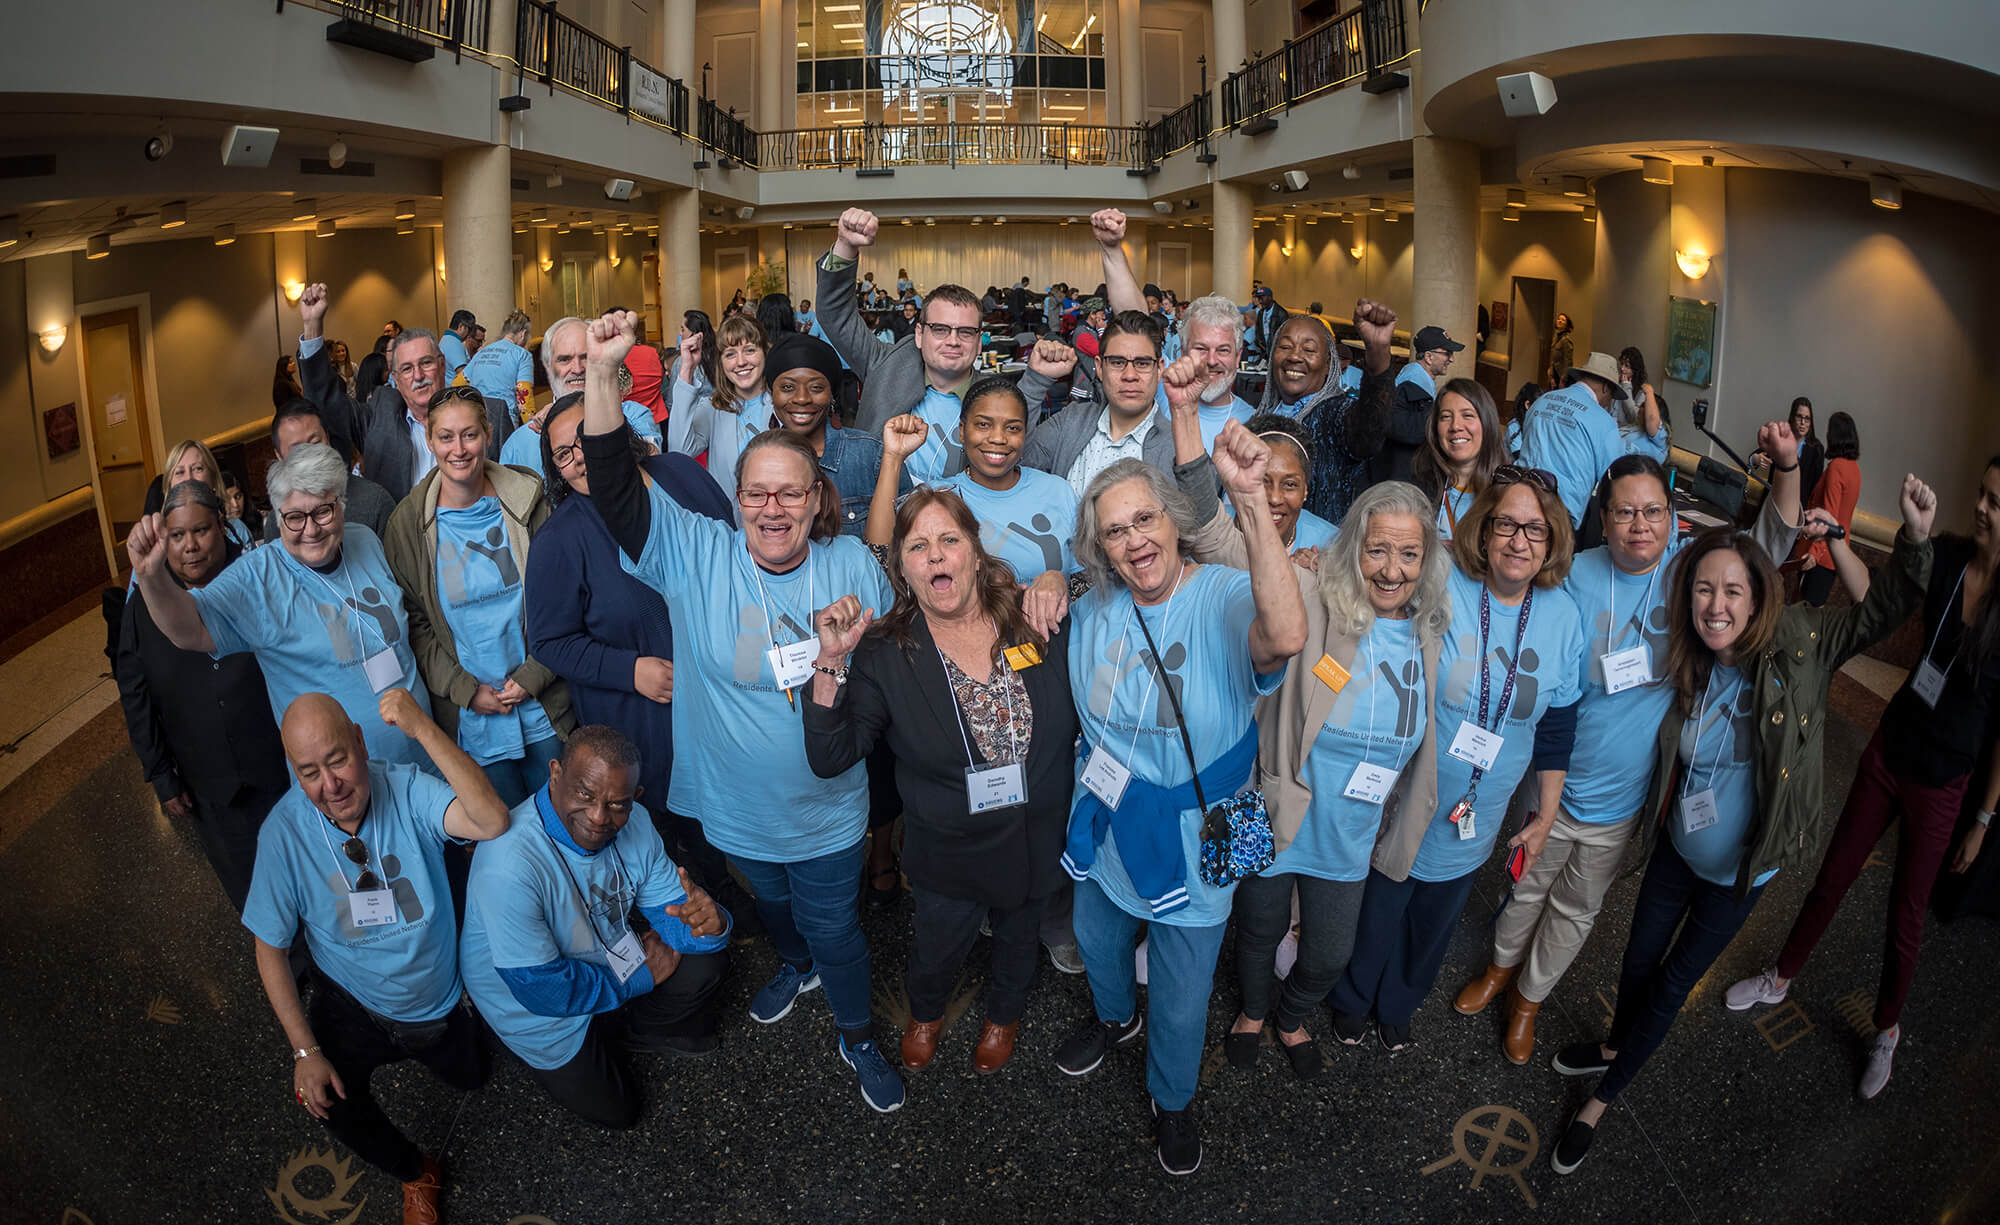 A group of around 30 people are standing inside a large well-lit hall. They are looking at the camera and cheering. Everyone is wearing a light blue t-shirt with Residents United Network on the front. The people are all different ages and ethnicities, and they look accomplished, and powerful.